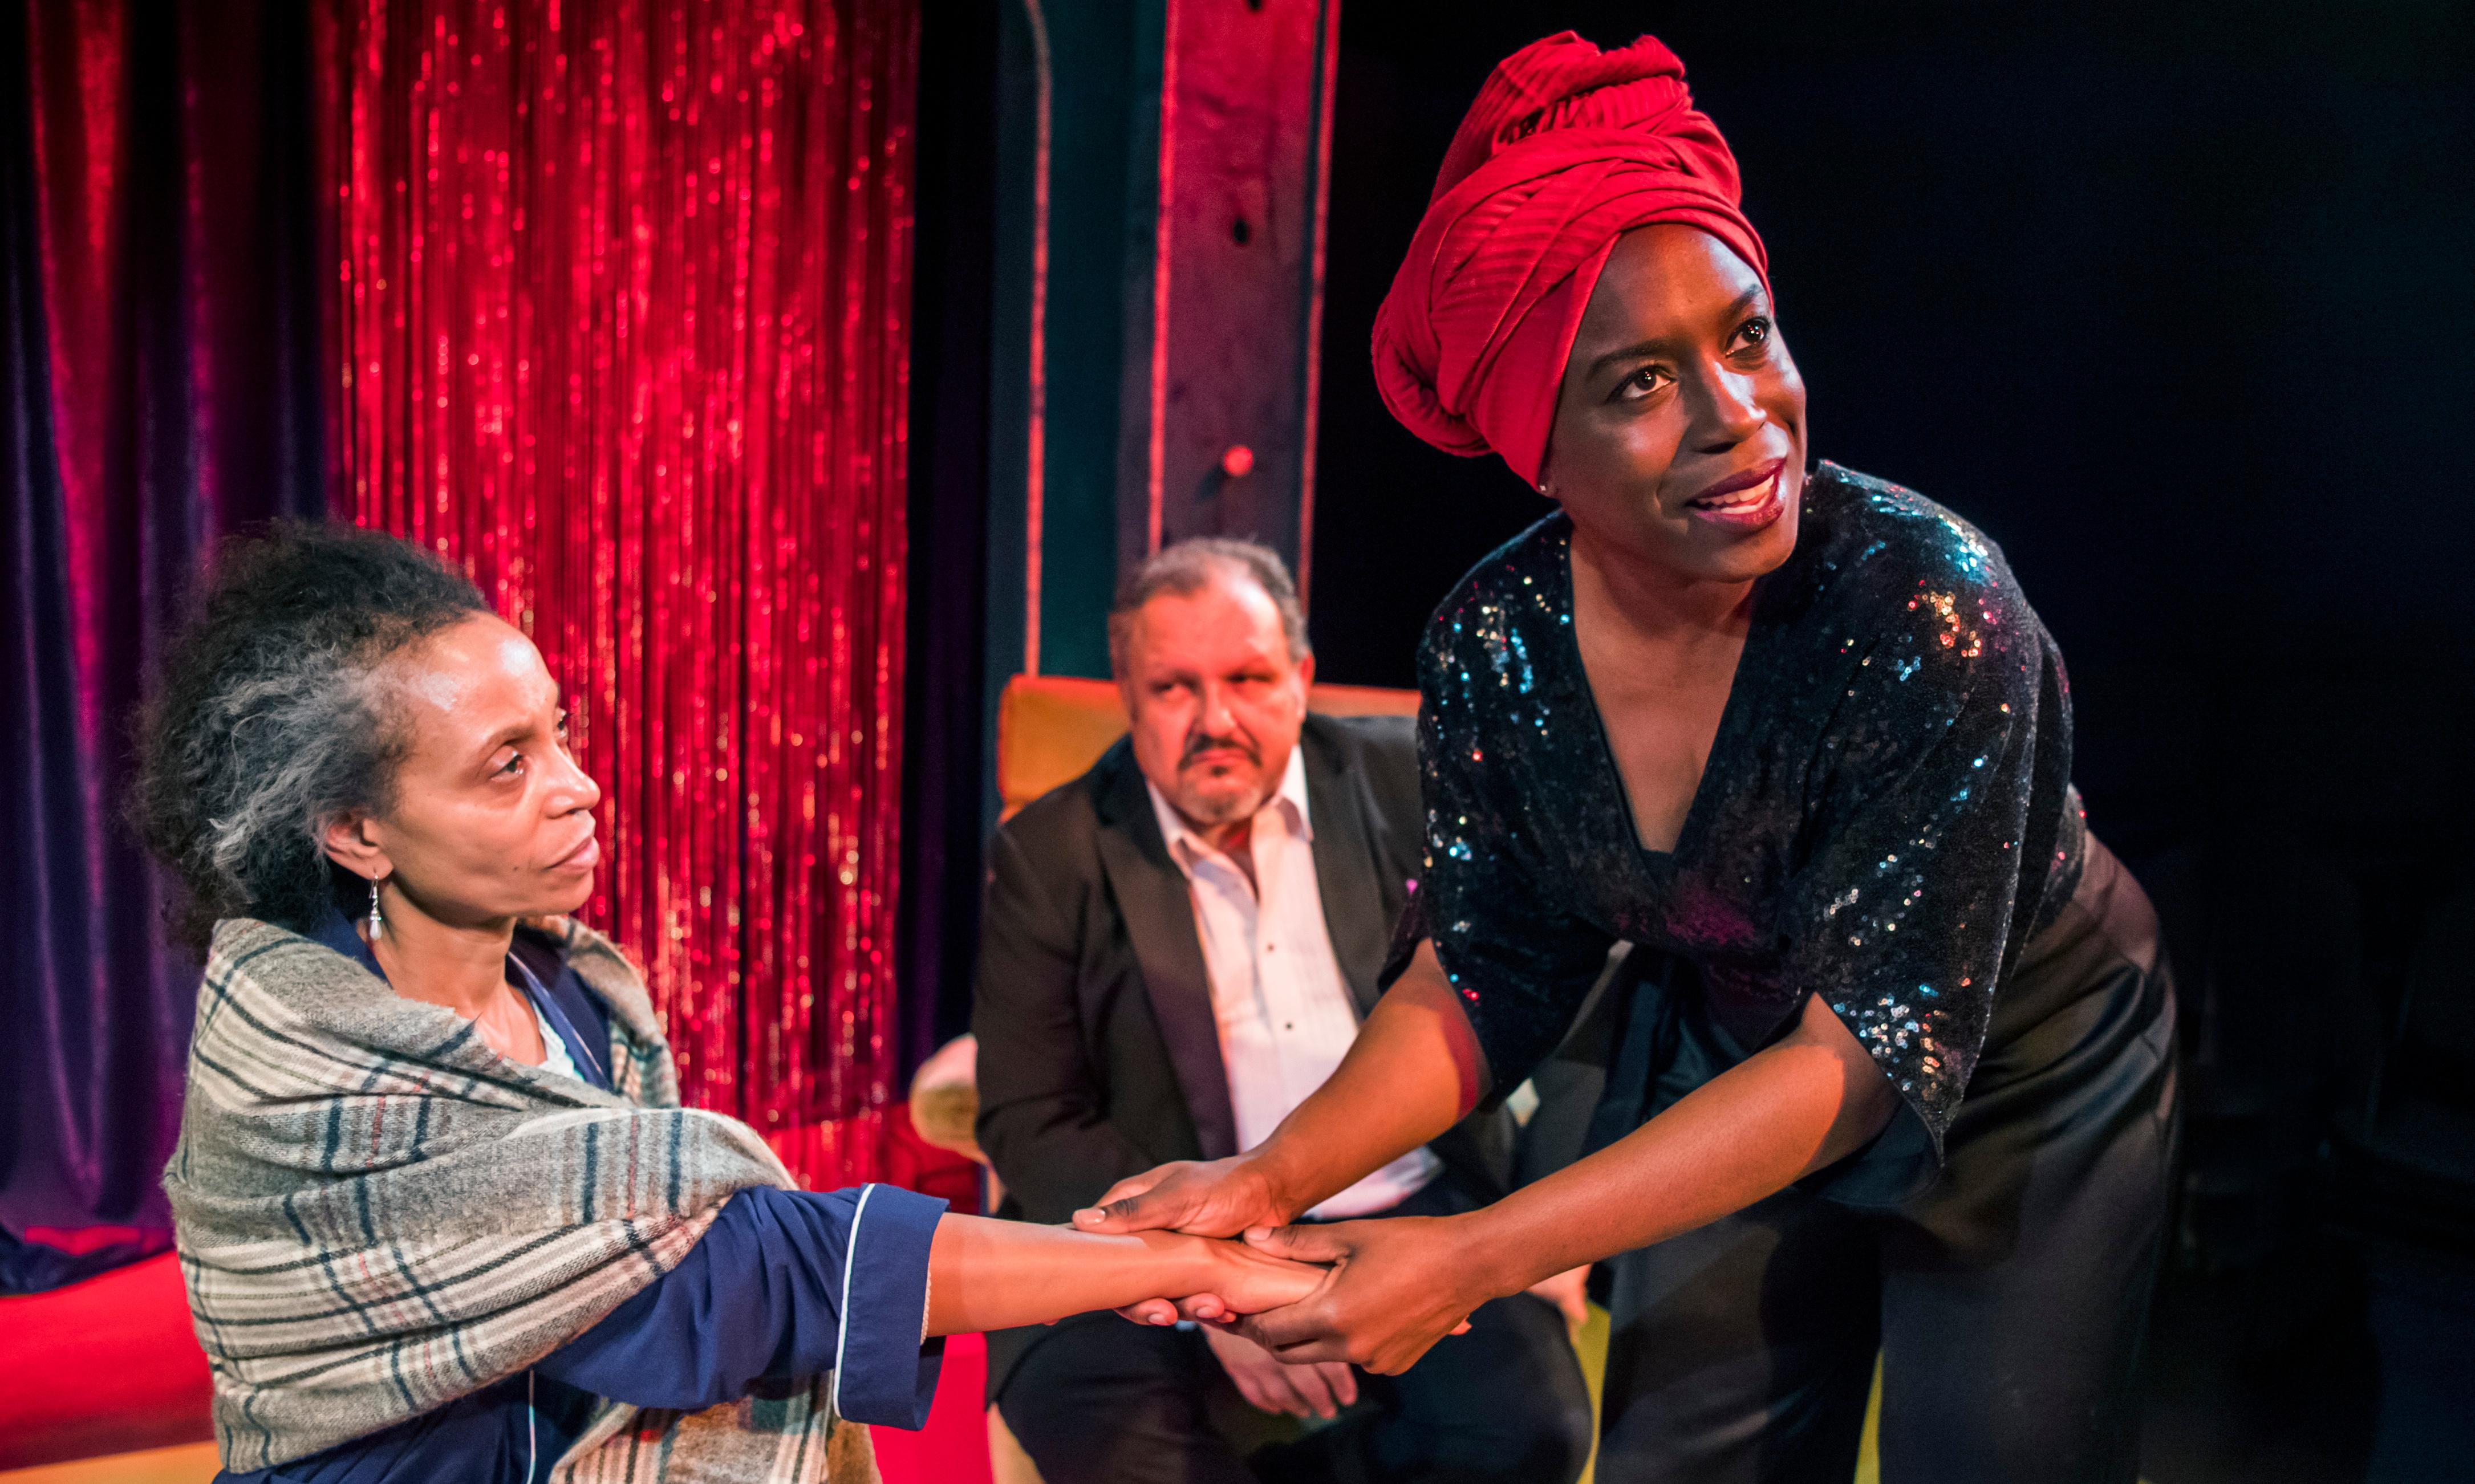 The Trick review – a magic show with nothing up its sleeve